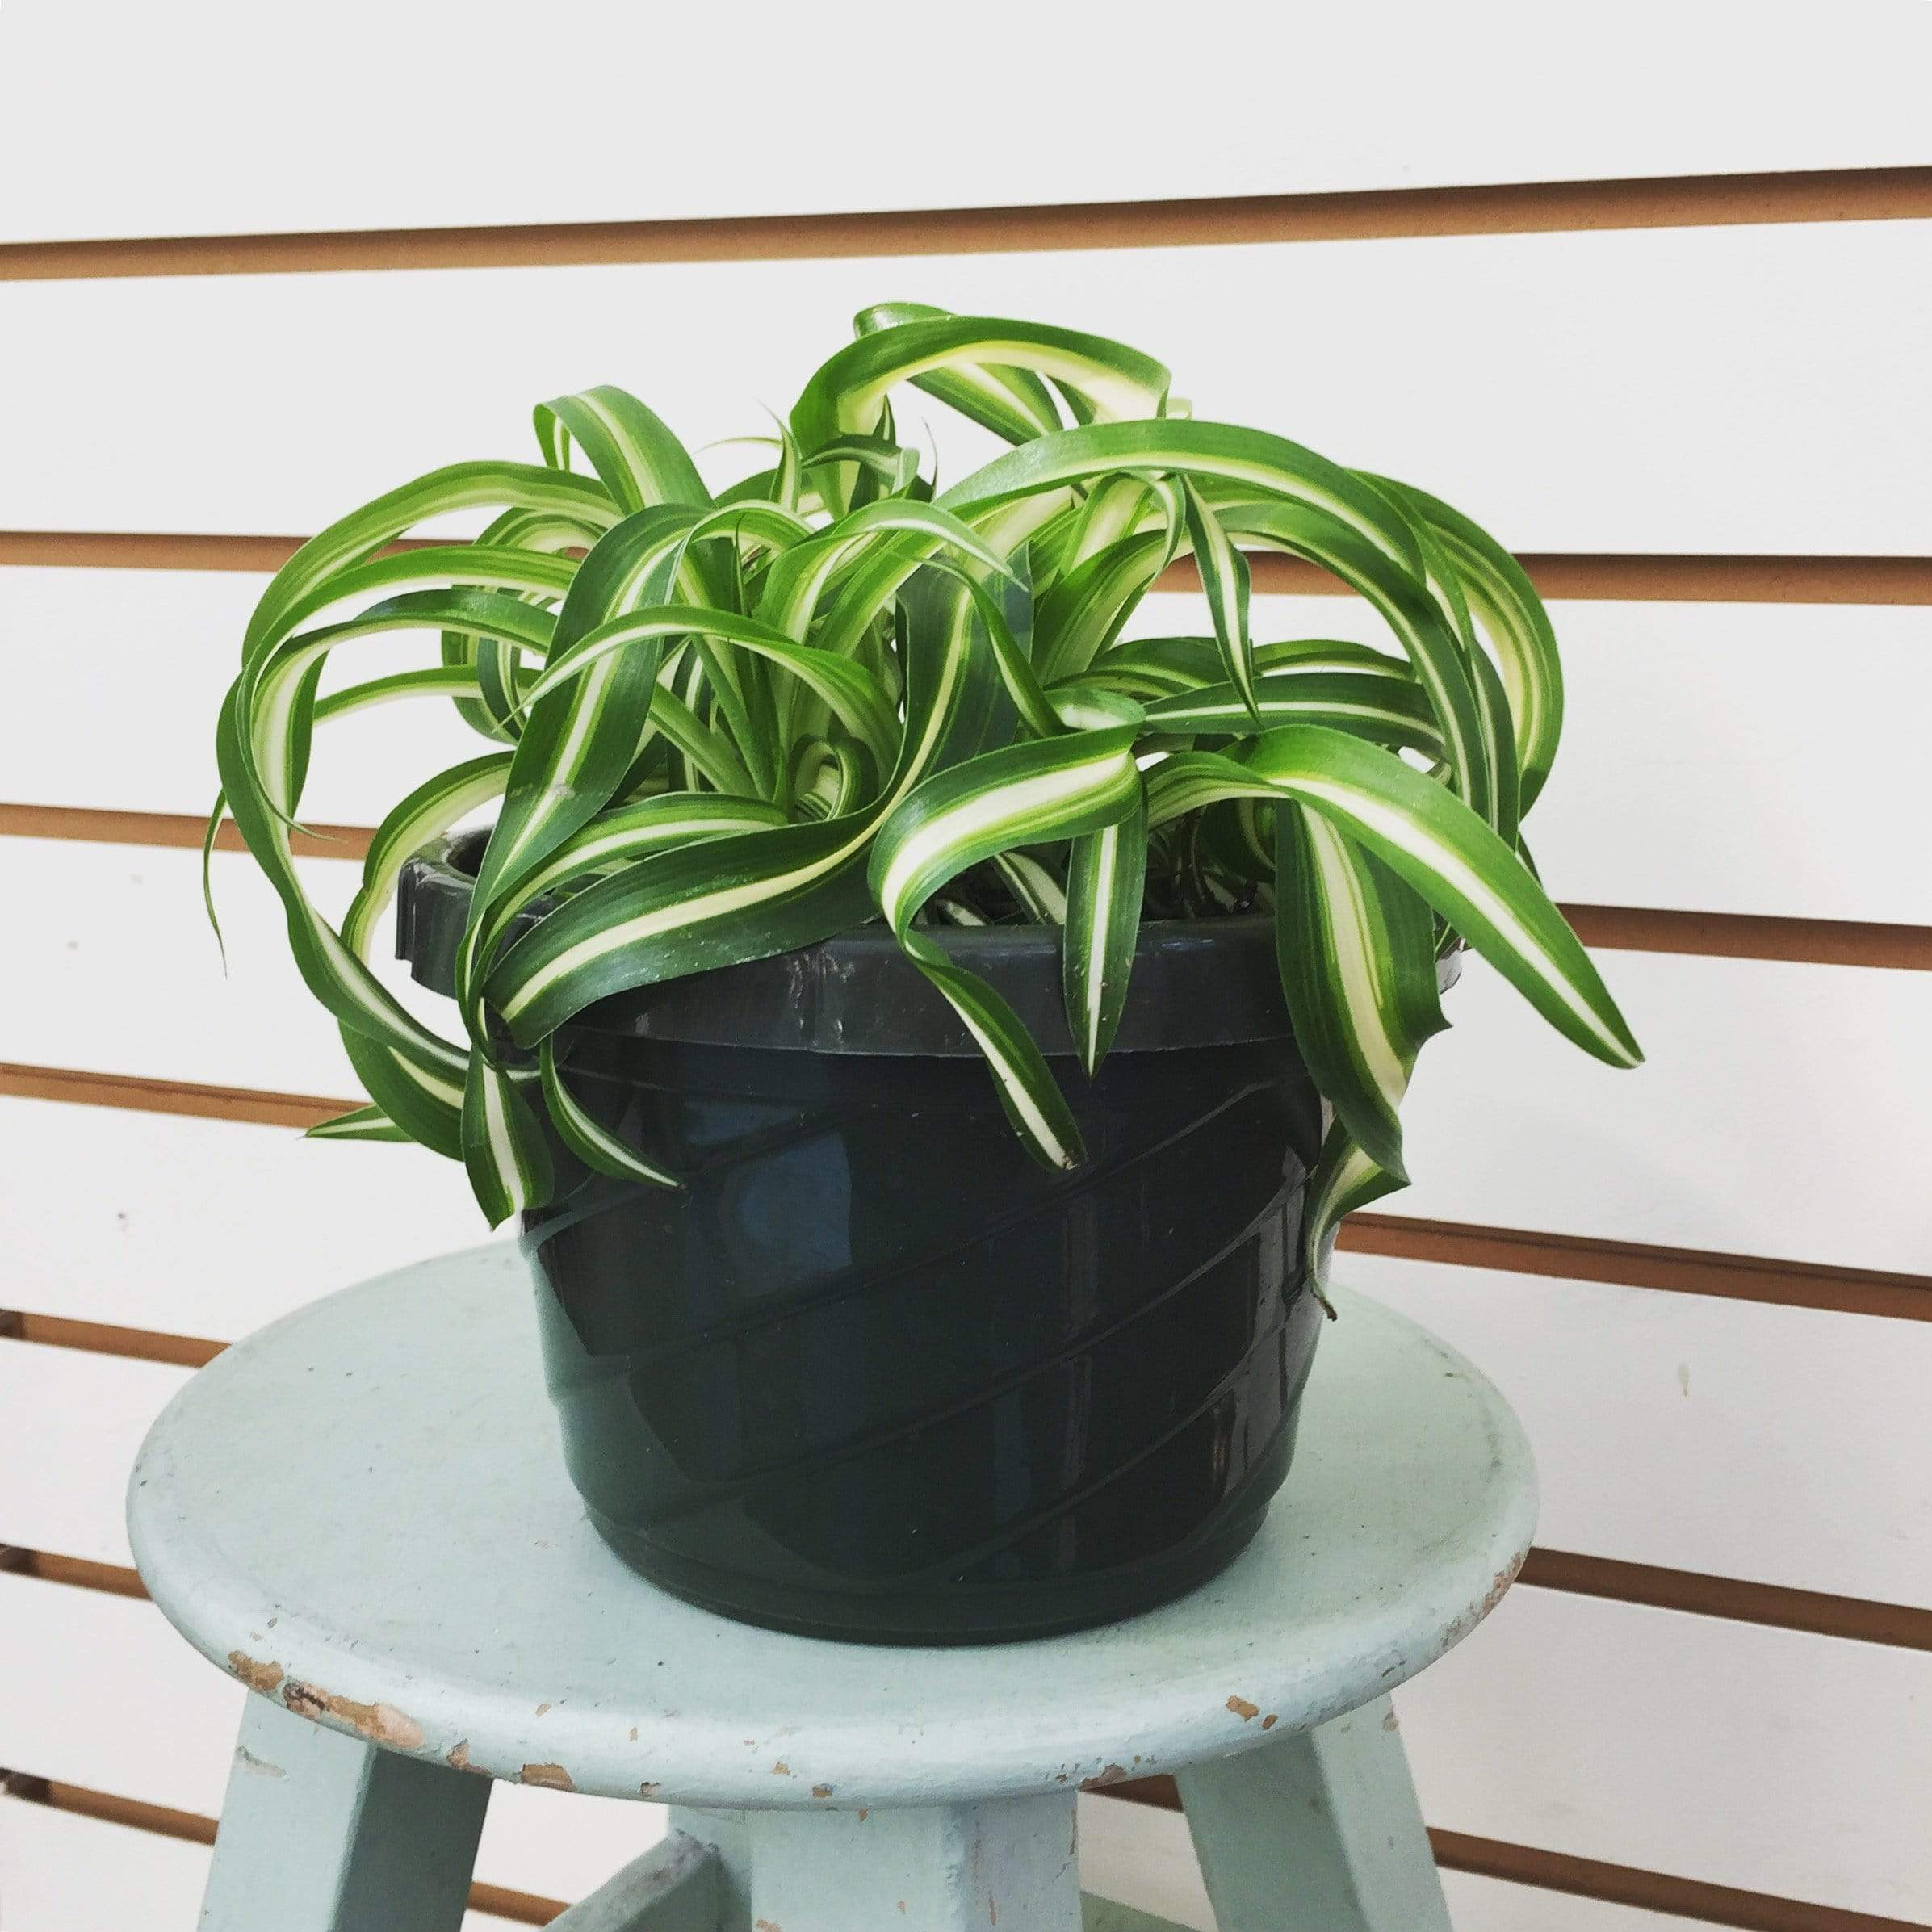 "The Plant Farm 6"" Plant Chlorophytum Curly Spider Plant"